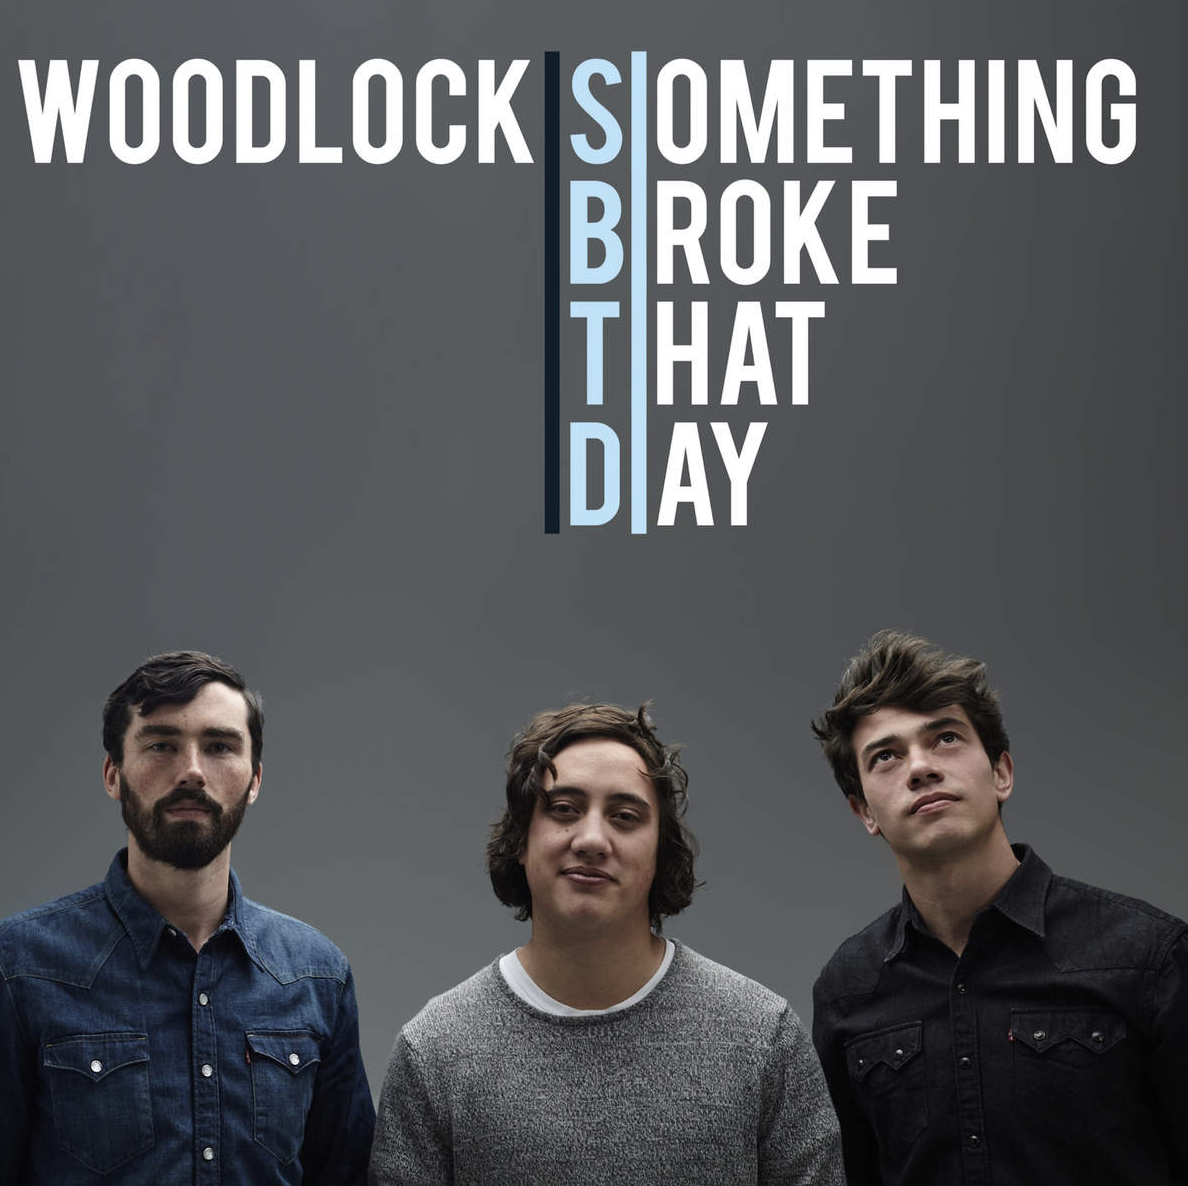 Something Broke That Day - Woodlock - Co-writer, Producer, Mixer